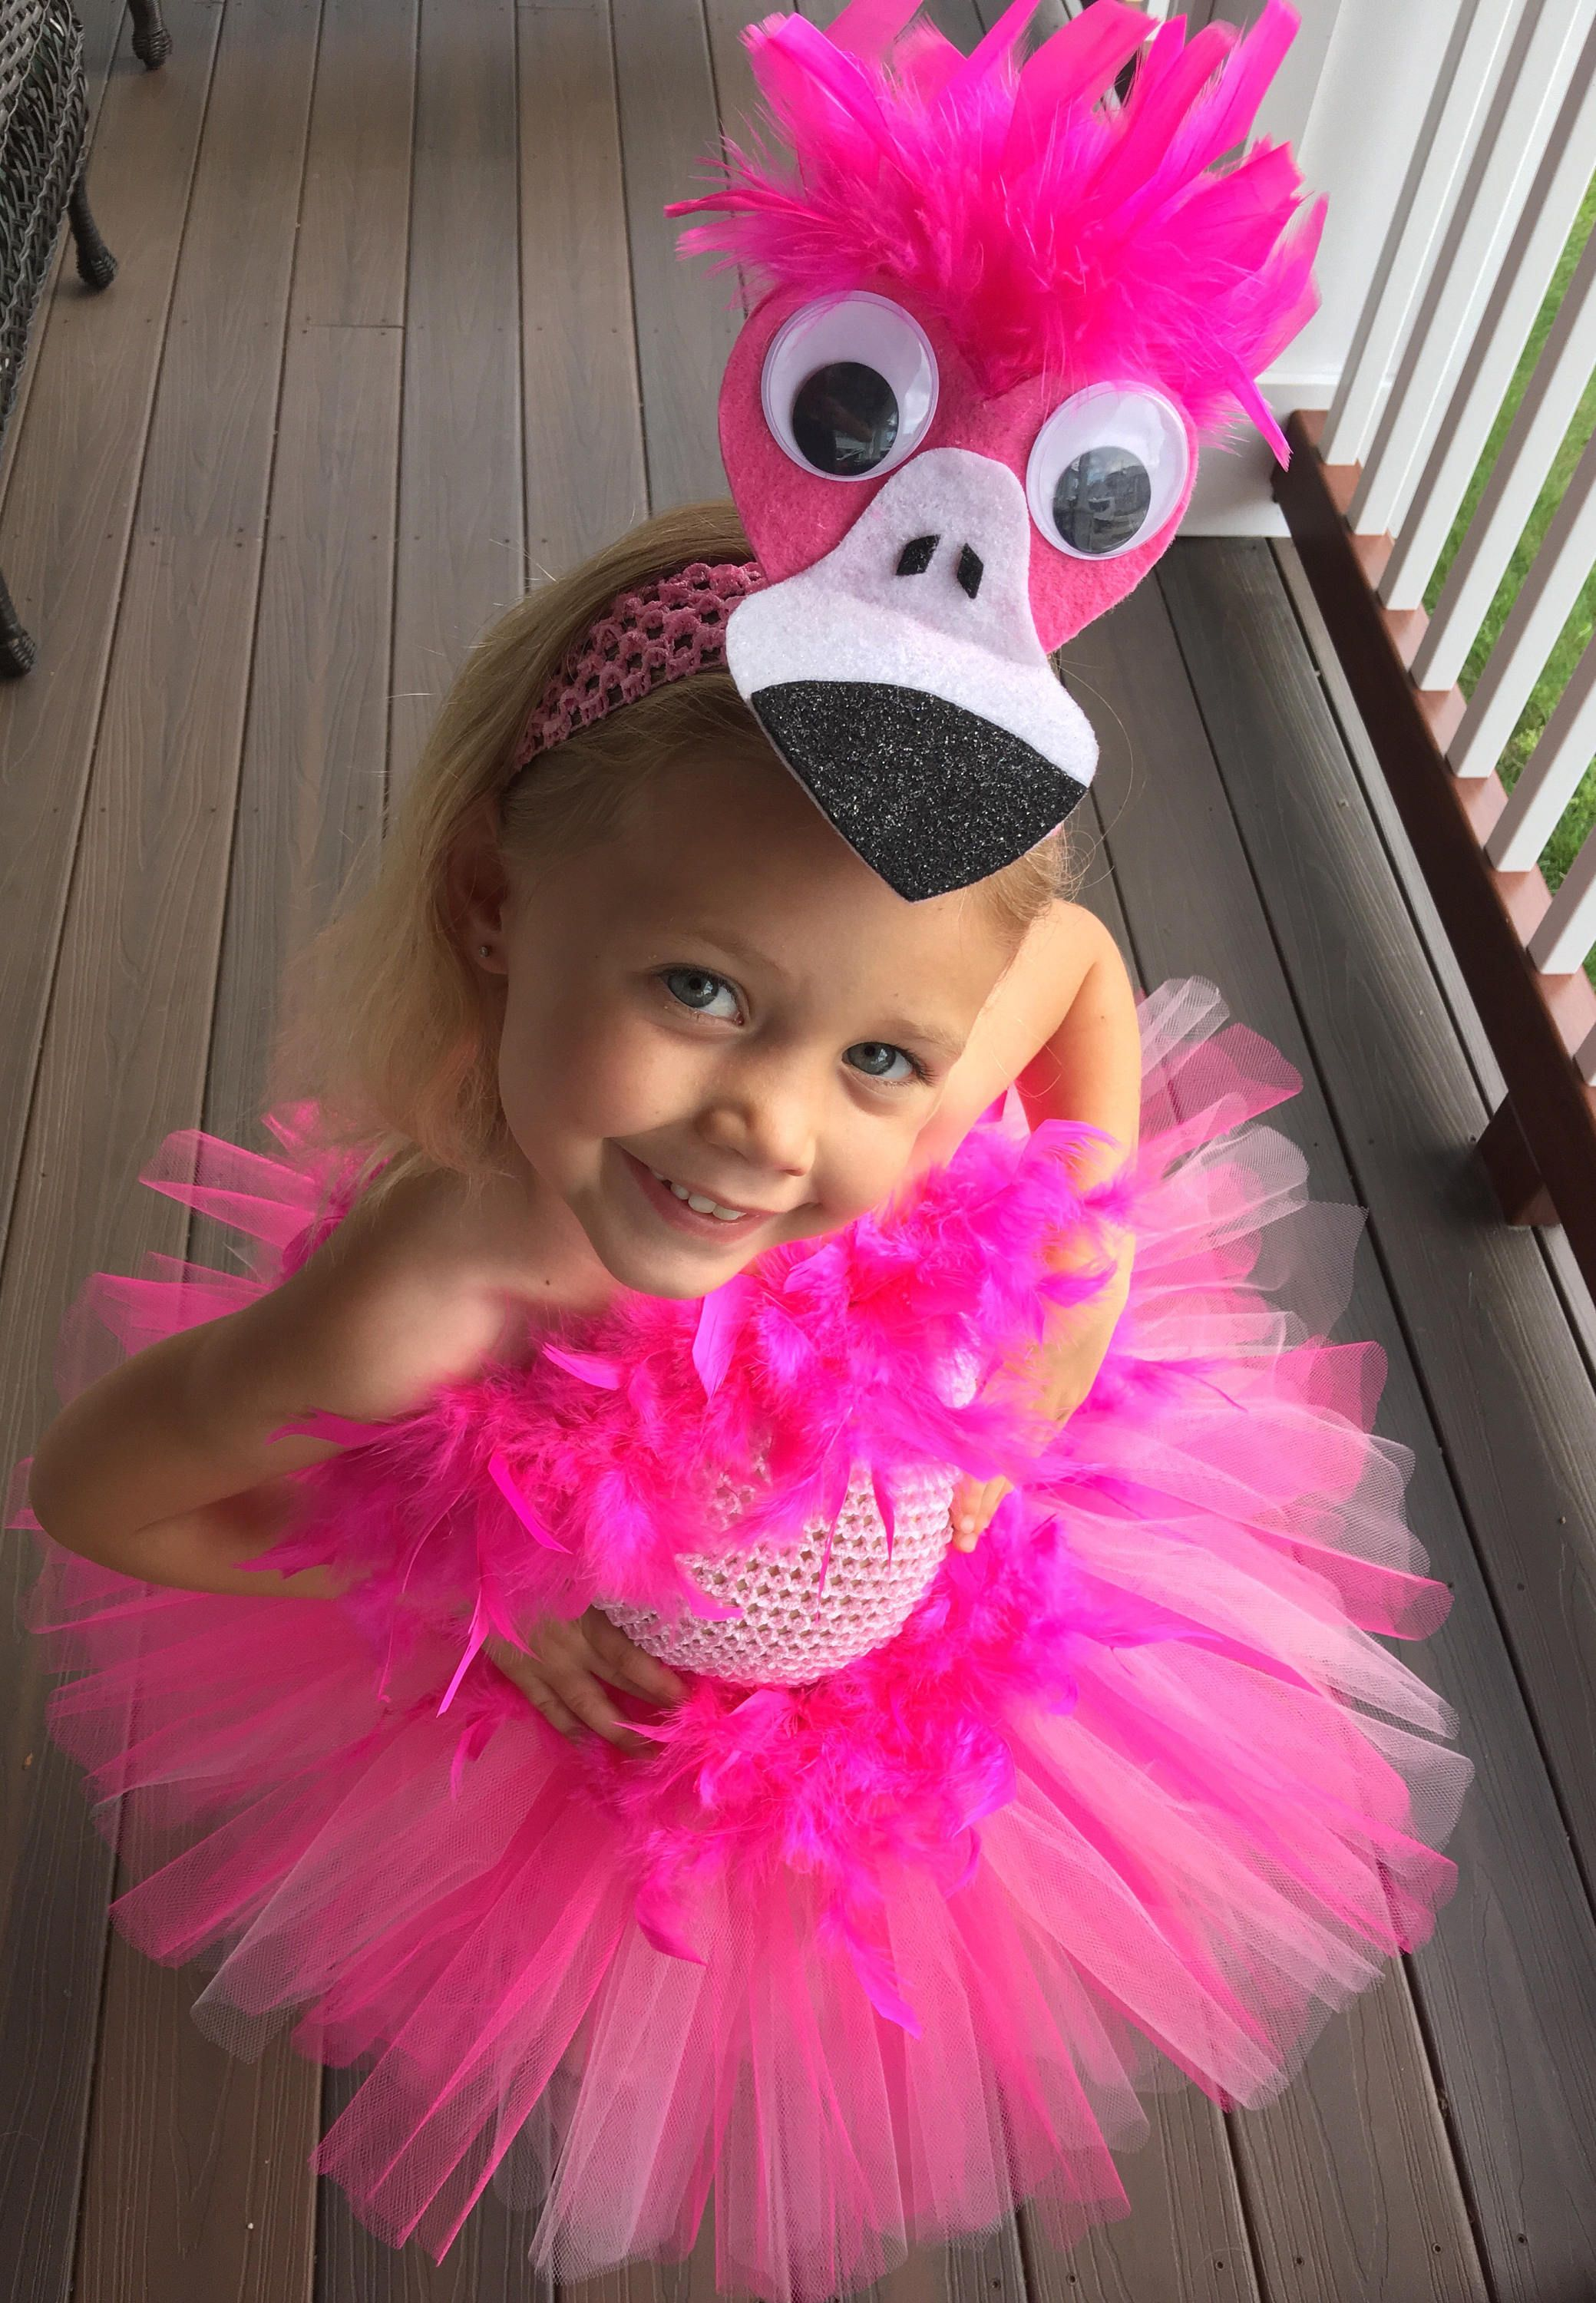 Halloween Delivery Guaranteed! Pink Flamingo Tutu Costume, Pink Bird Tutu Costume, Pink Feather Costume, Tutu Halloween Costume